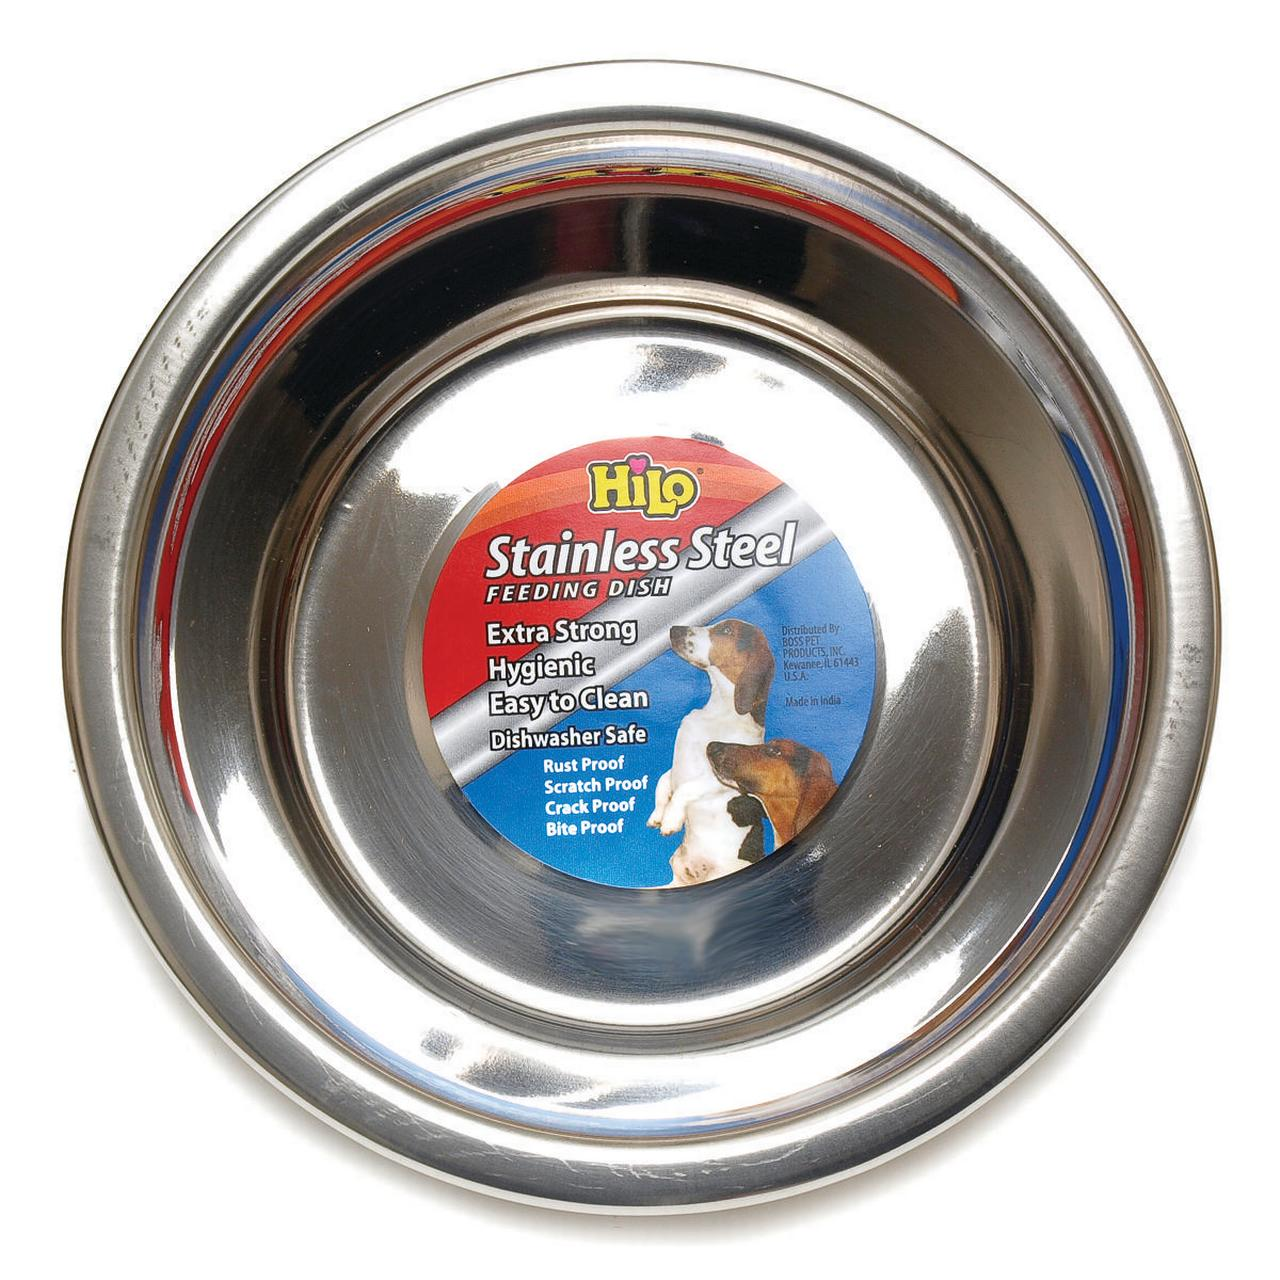 Boss Pet 56670 Hilo Pet Feeding Bowls, Stainless Steel, 5 Qt